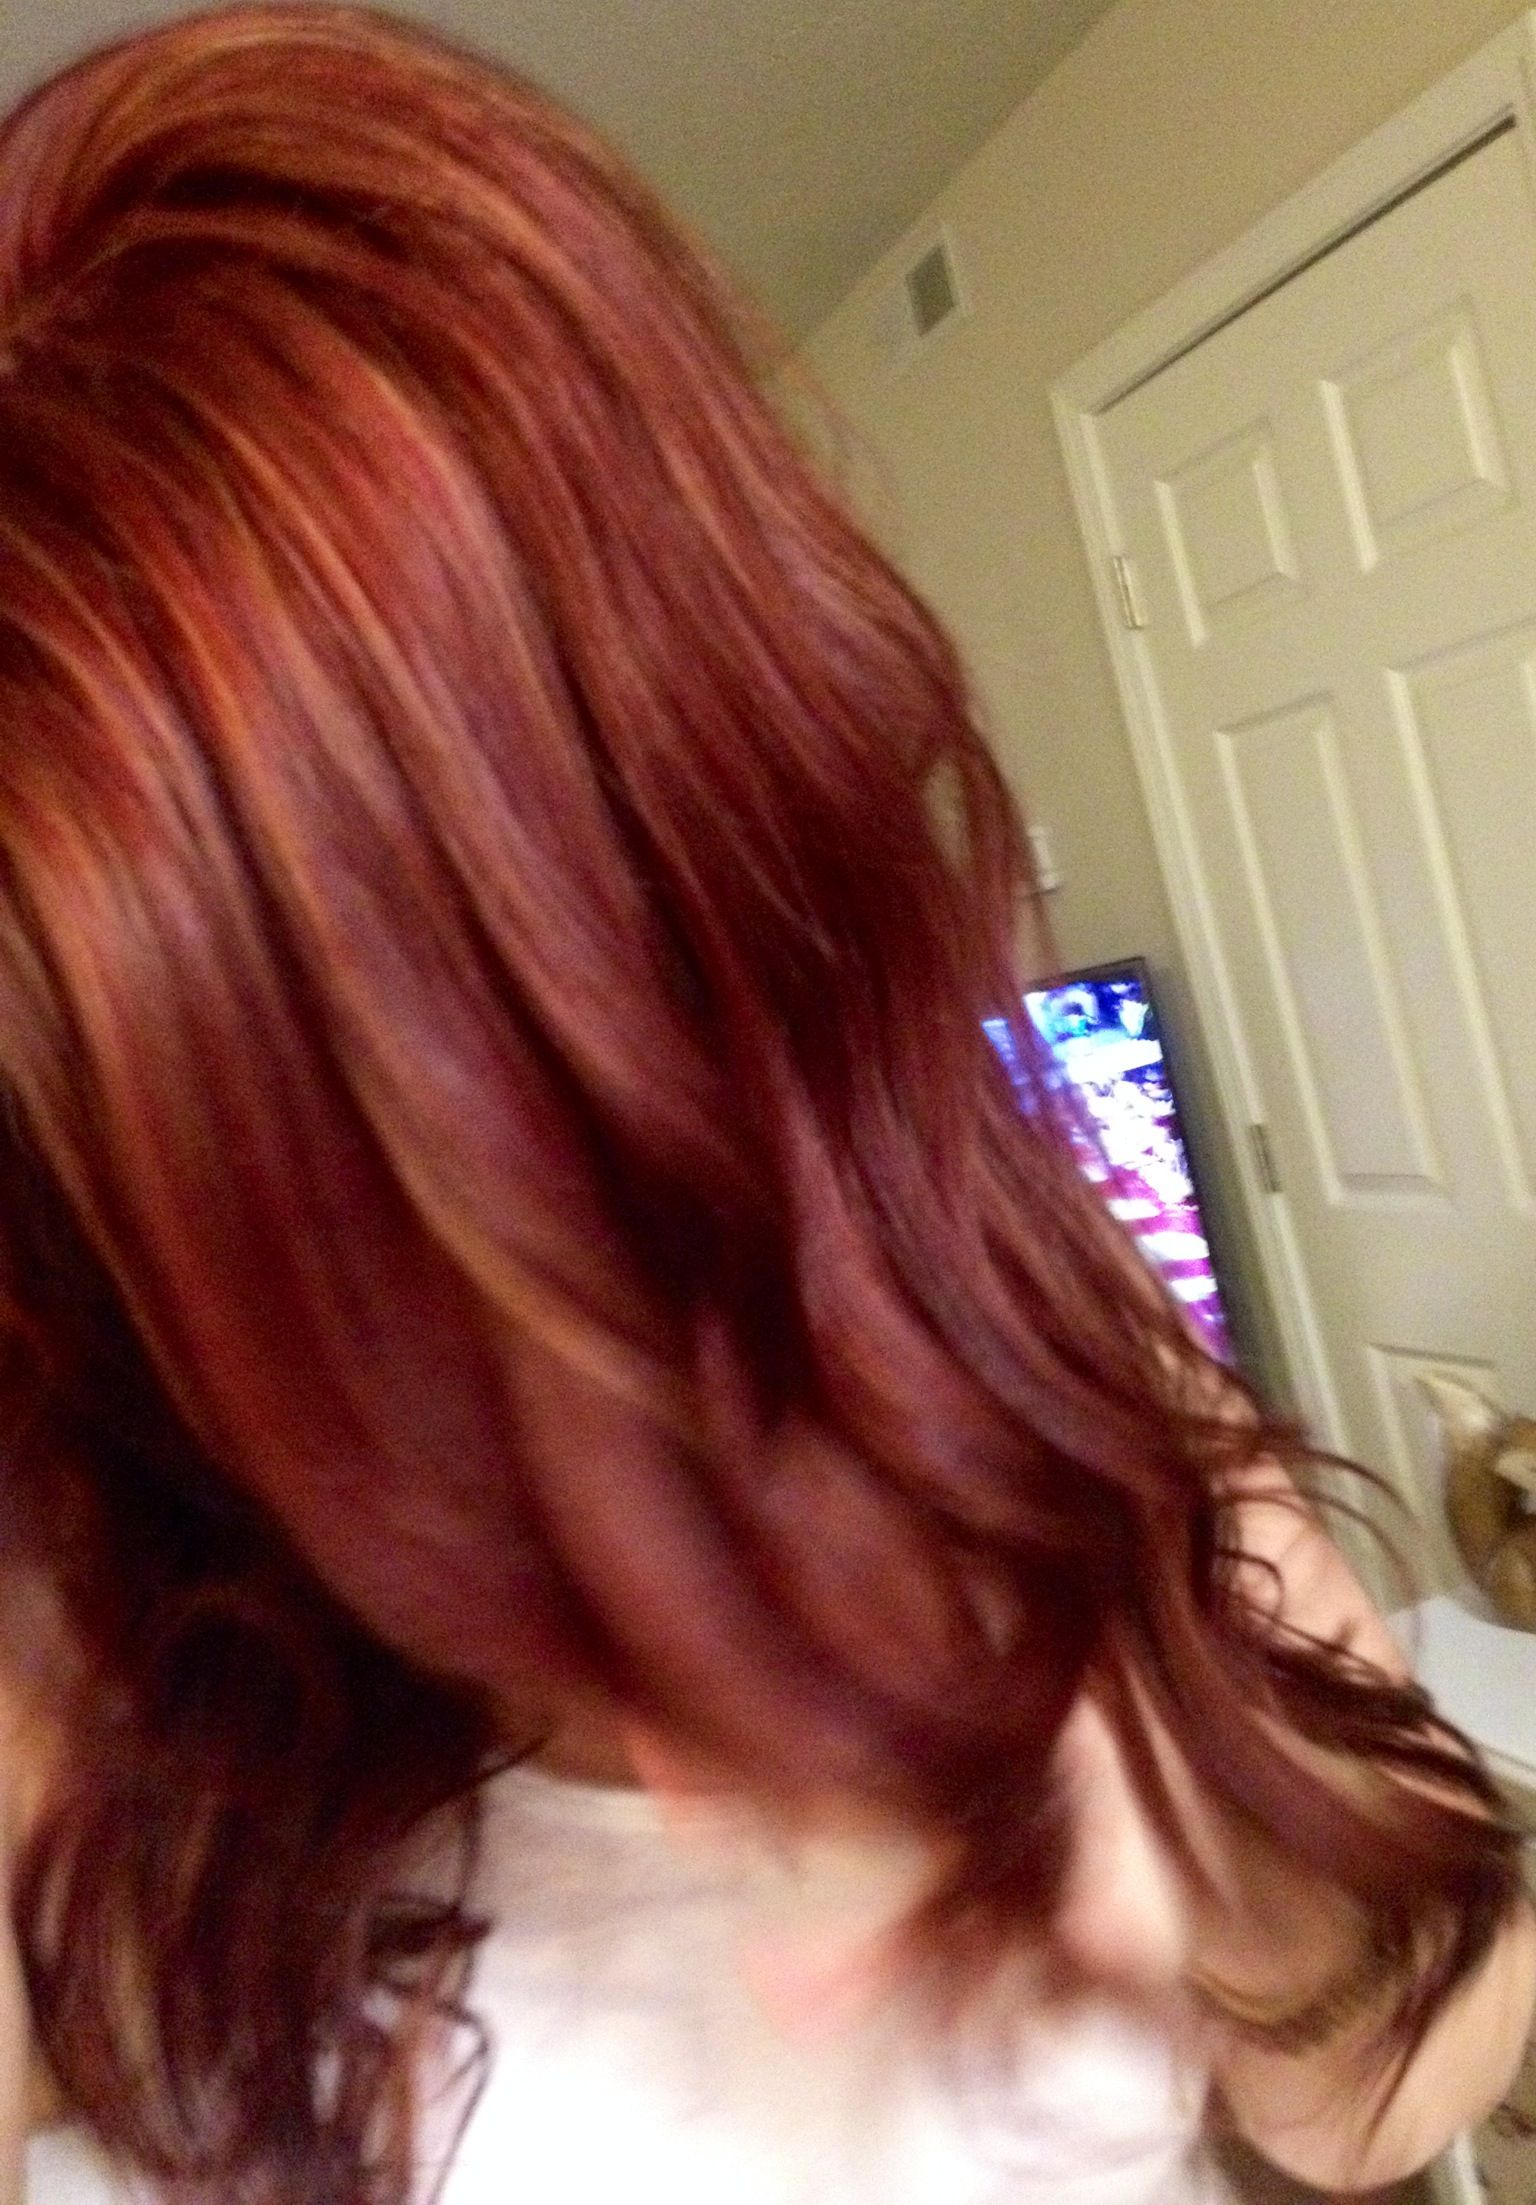 Mahogany red with copper red and blonde highlights.